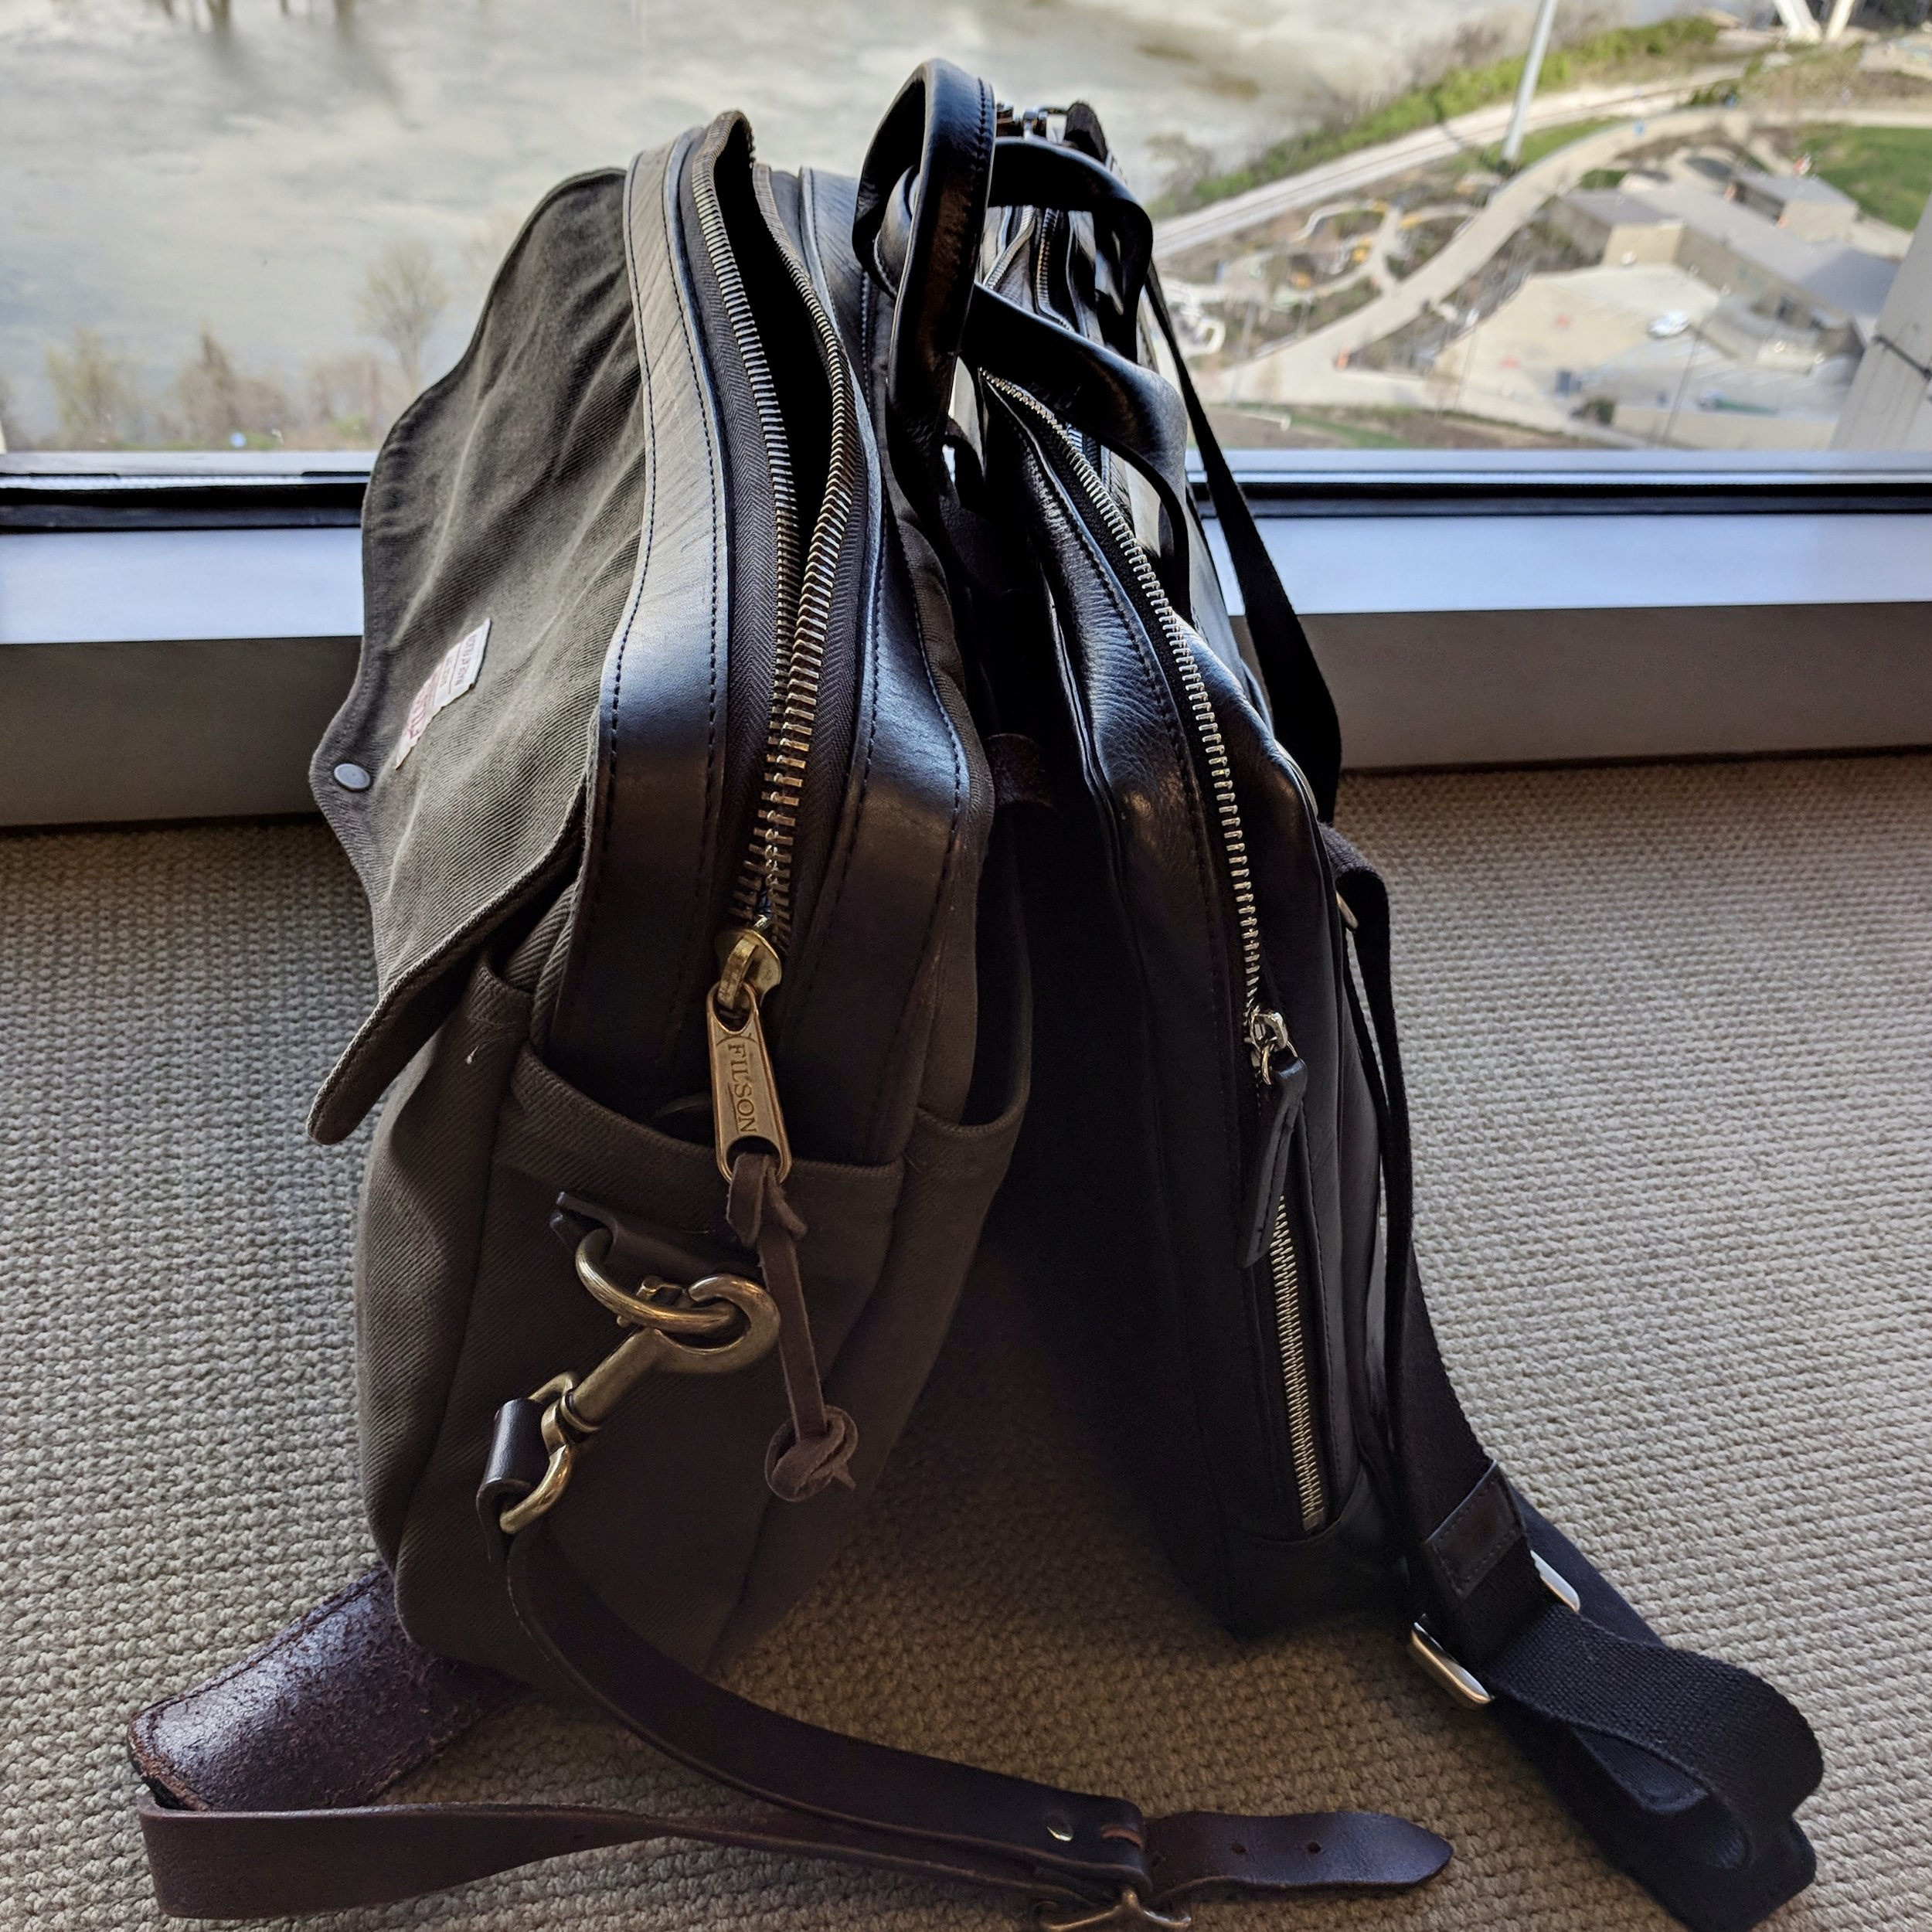 Filson v. Toffee Lincoln size comparison